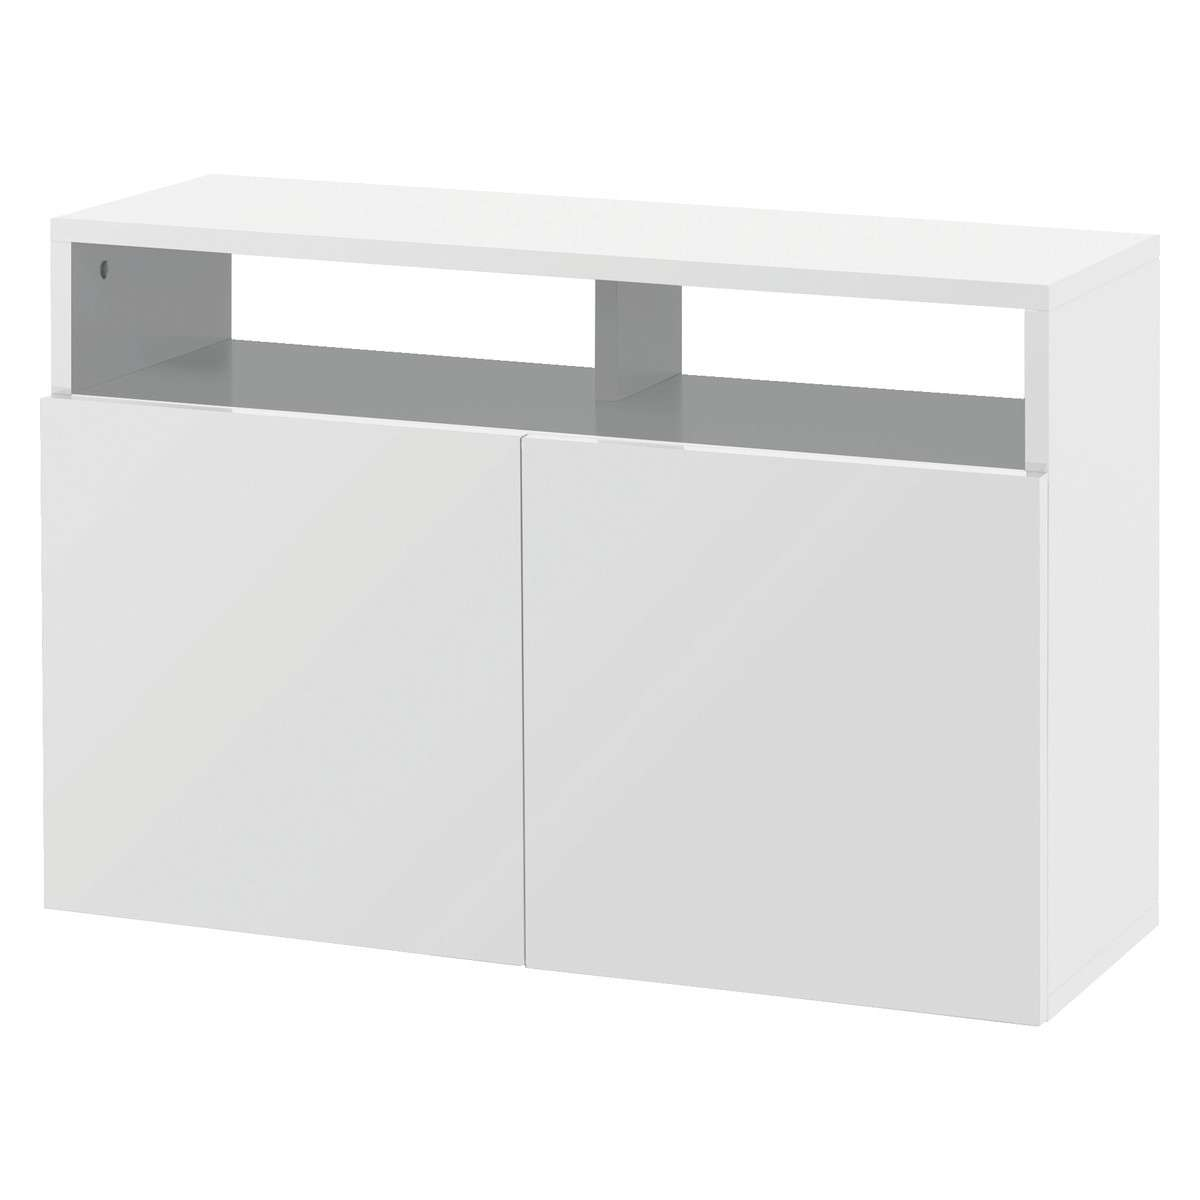 Kubrik White High Gloss Small Sideboard | Buy Now At Habitat Uk Inside Small Low Sideboards (View 18 of 20)